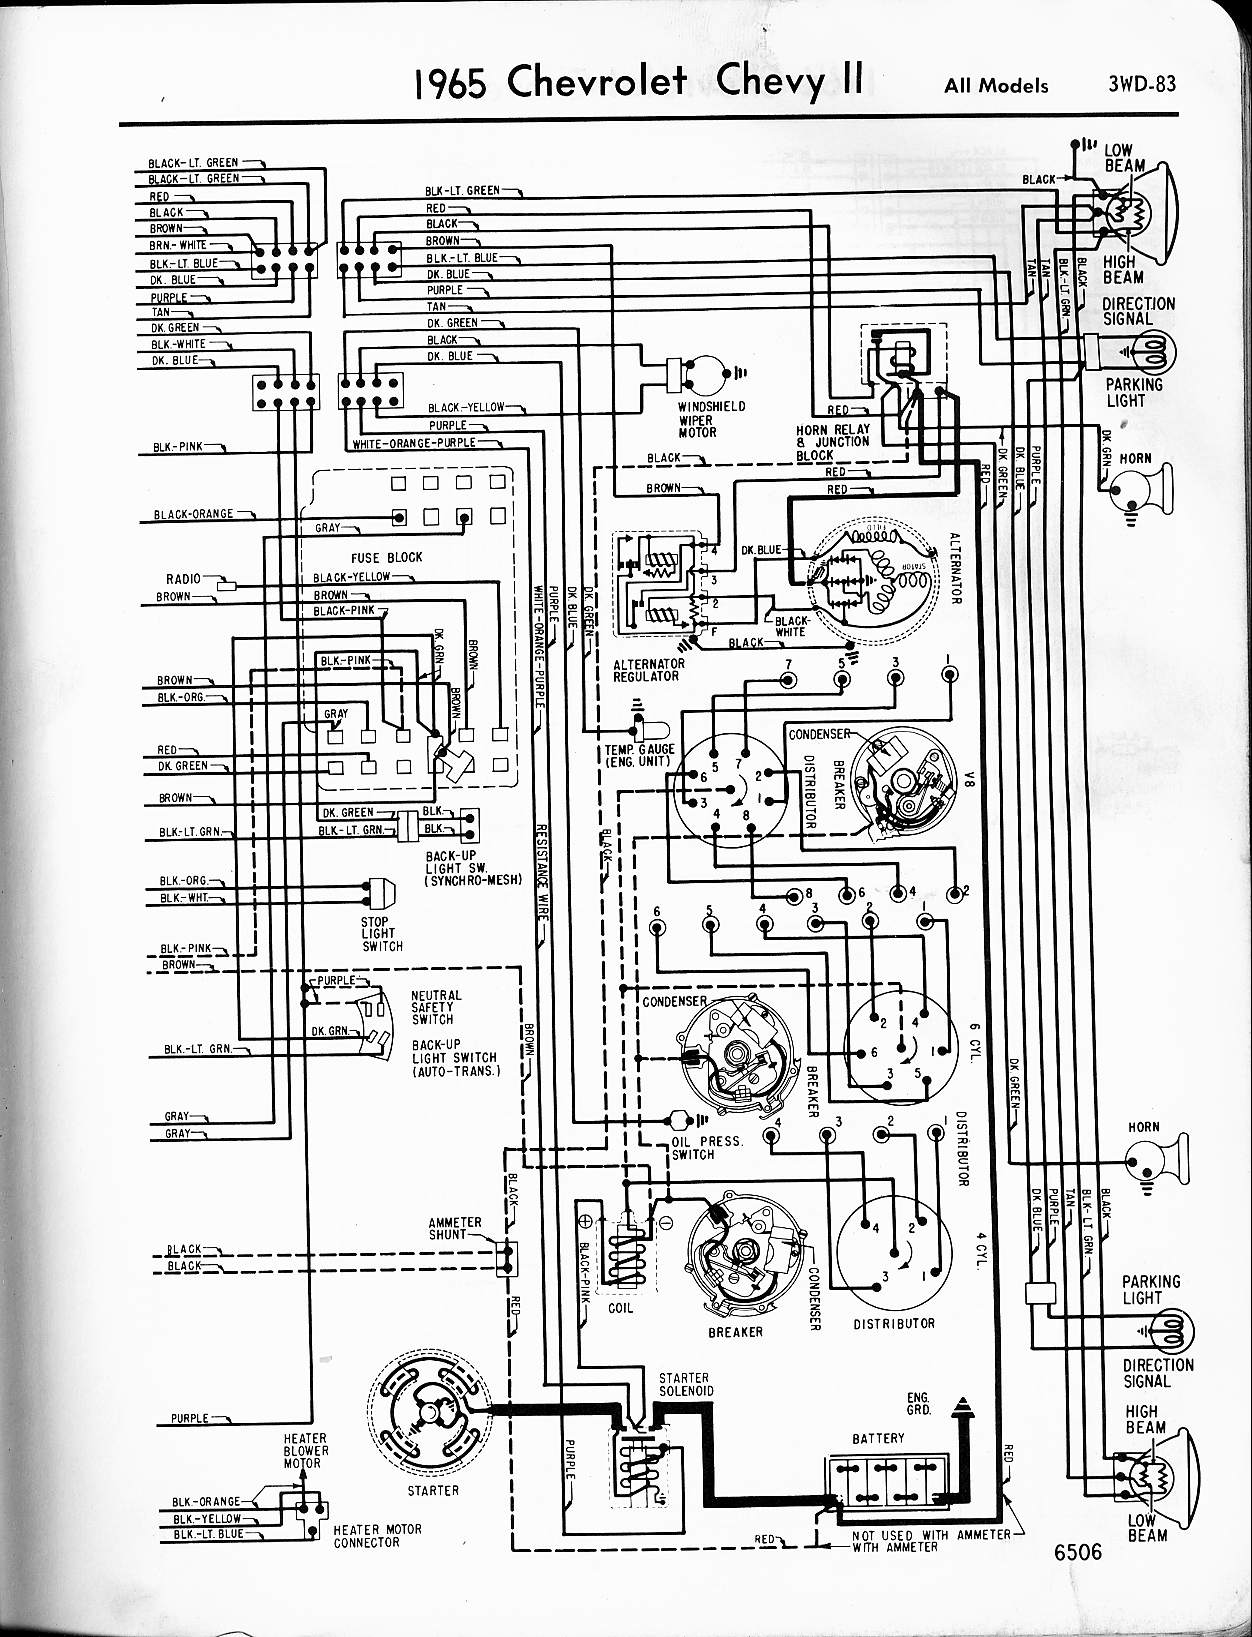 MWireChev65_3WD 083 66 chevelle wiring schematics free download diagram schematic 66 nova wiring harness at bayanpartner.co